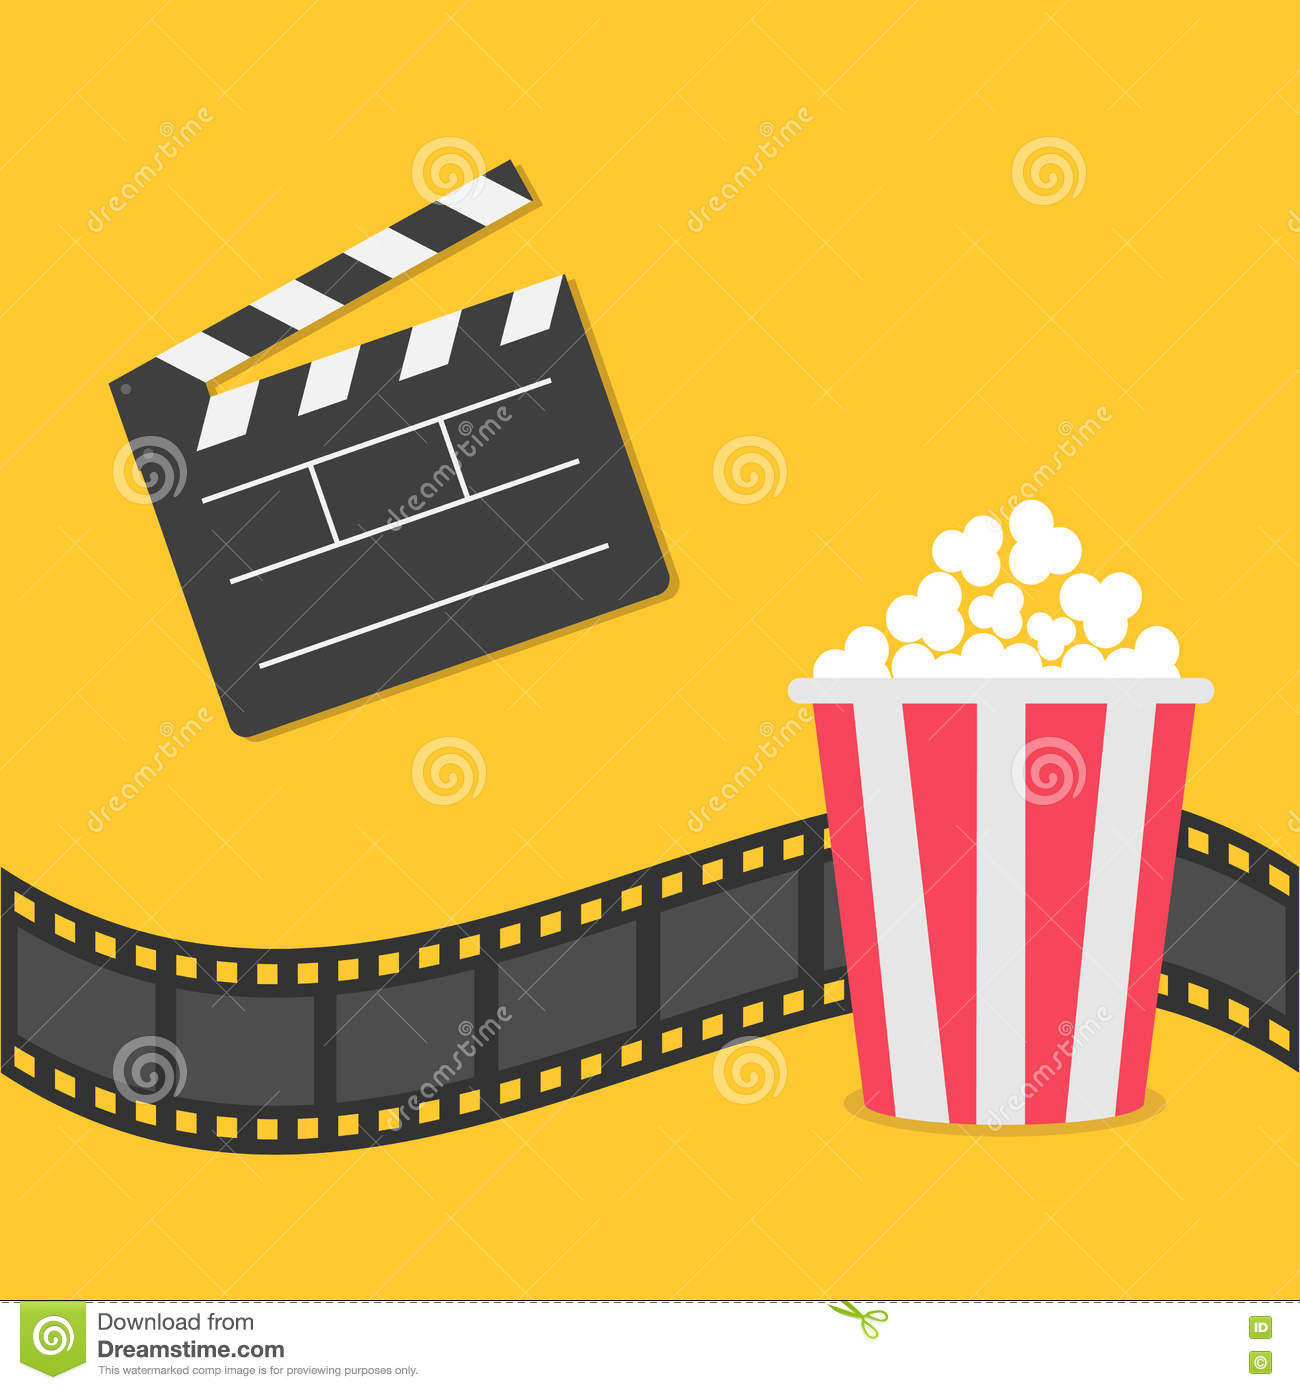 Cinema Night Illustration Vector Illustration ...